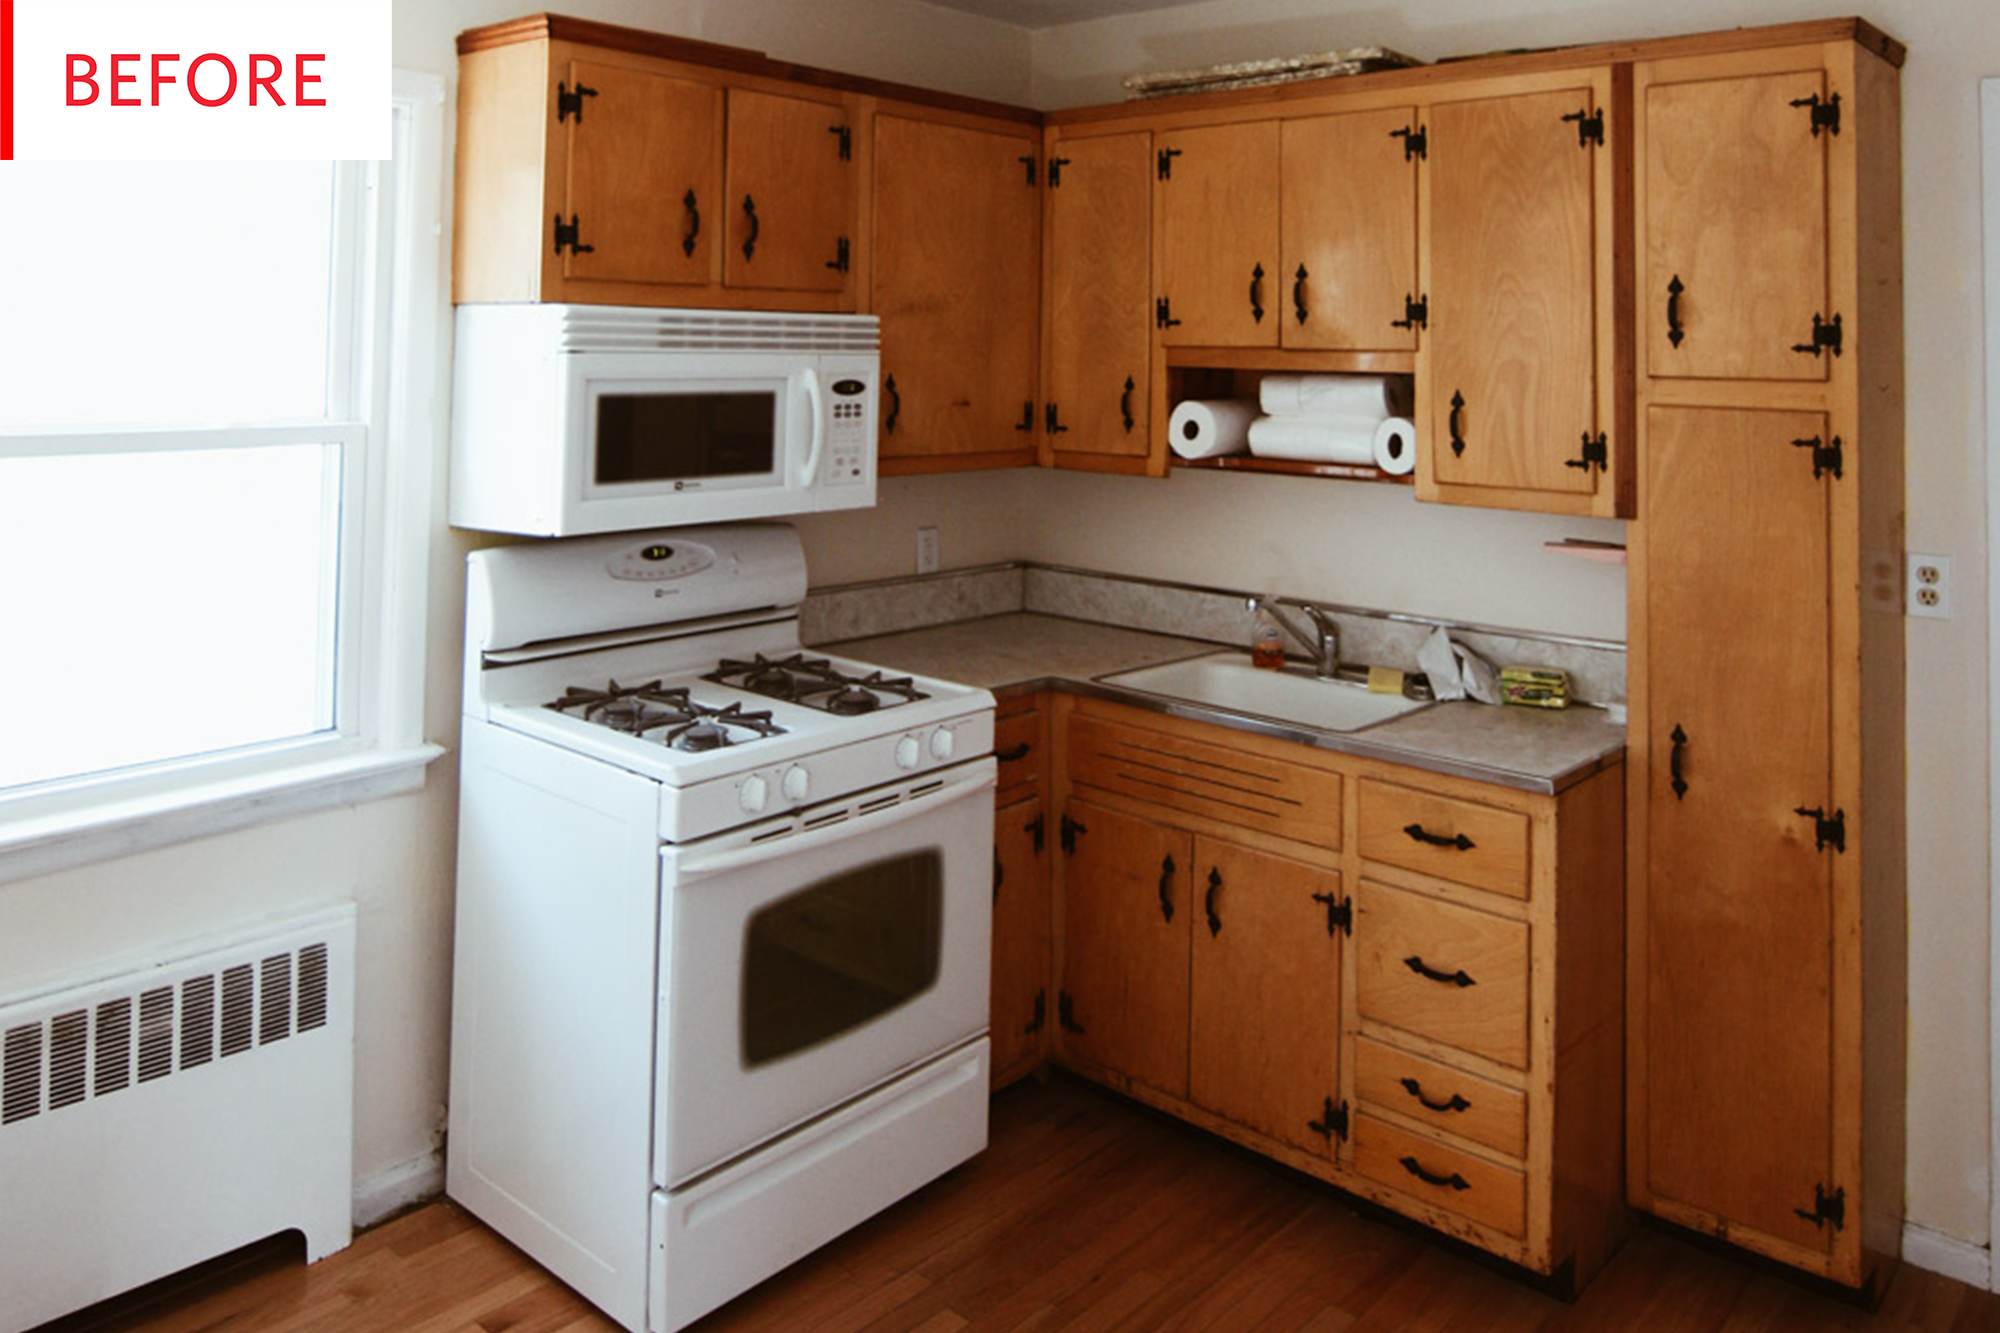 Painting Kitchen Cabinets Budget Remodel Before After